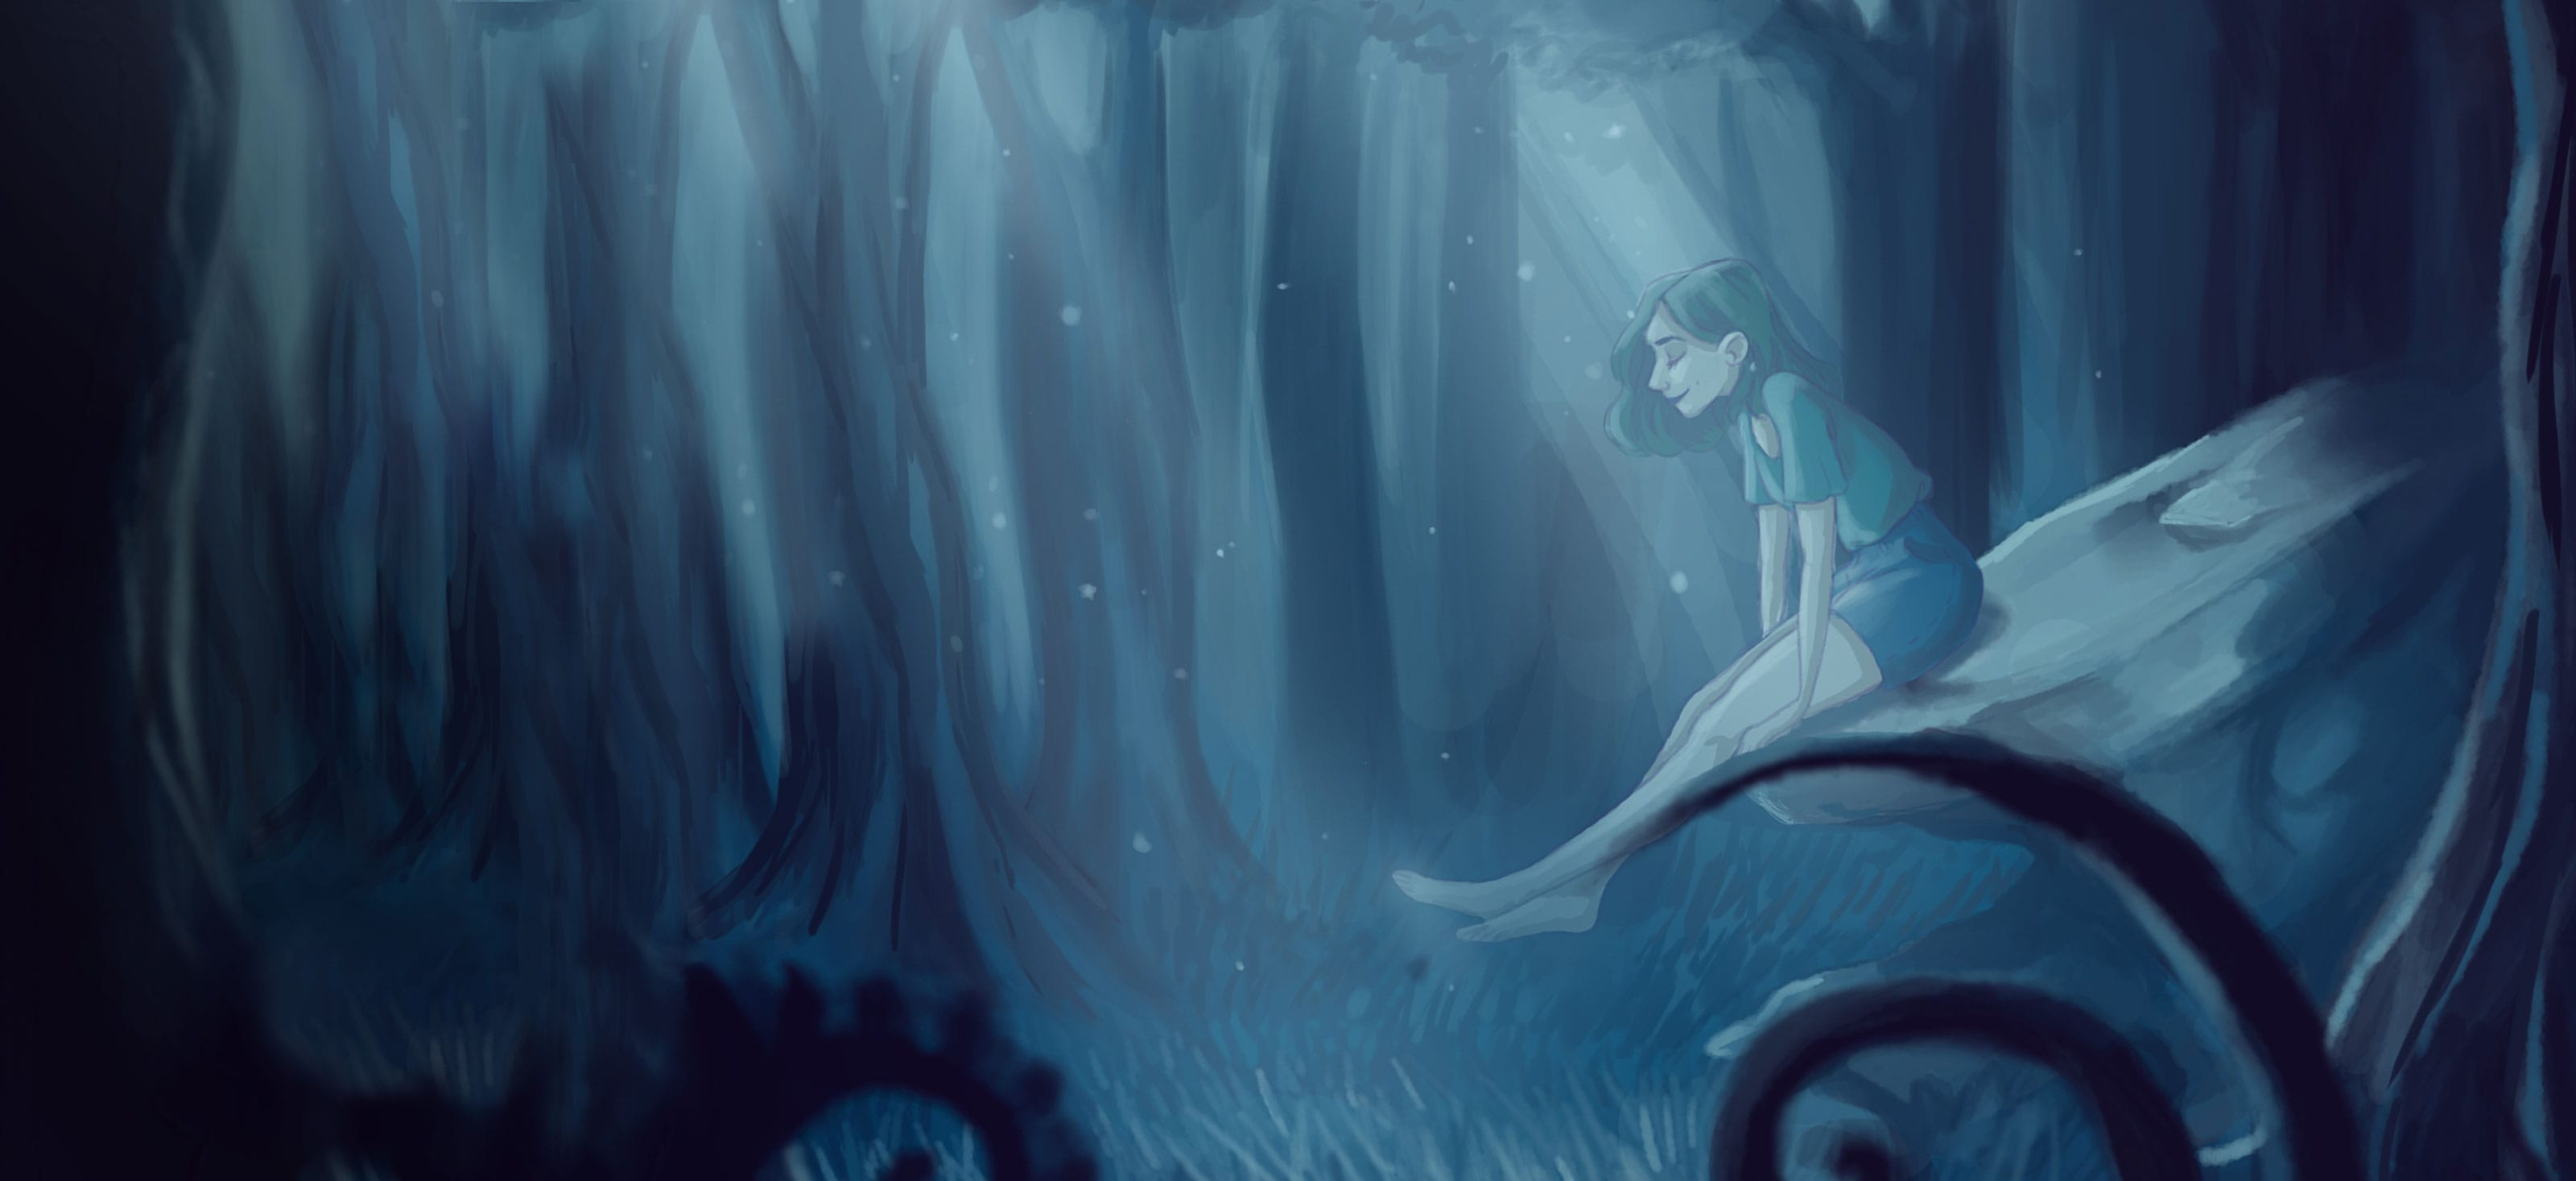 A woman sitting contentedly on an elevated rock in a forest clearing bathed in a dim light from the sky.